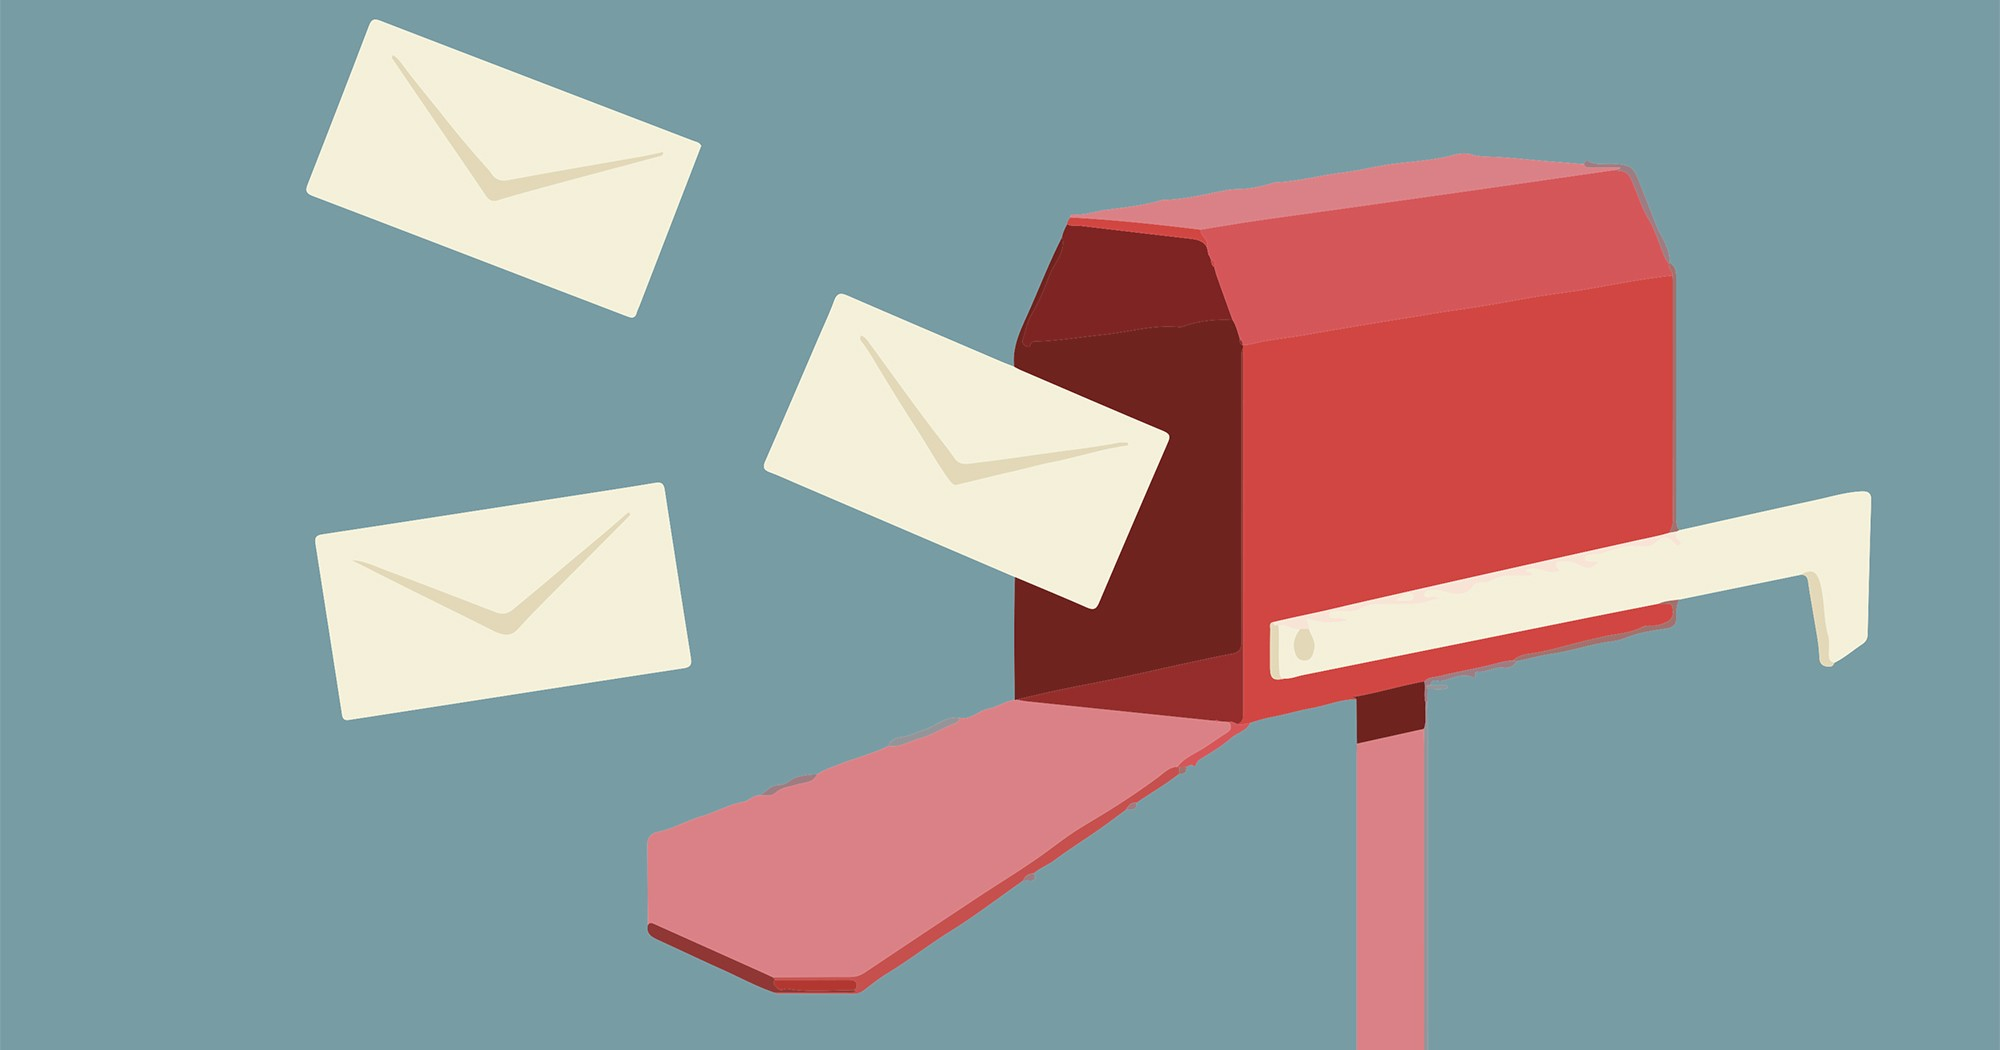 Implementing Direct Mail into a Digital Marketing Strategy